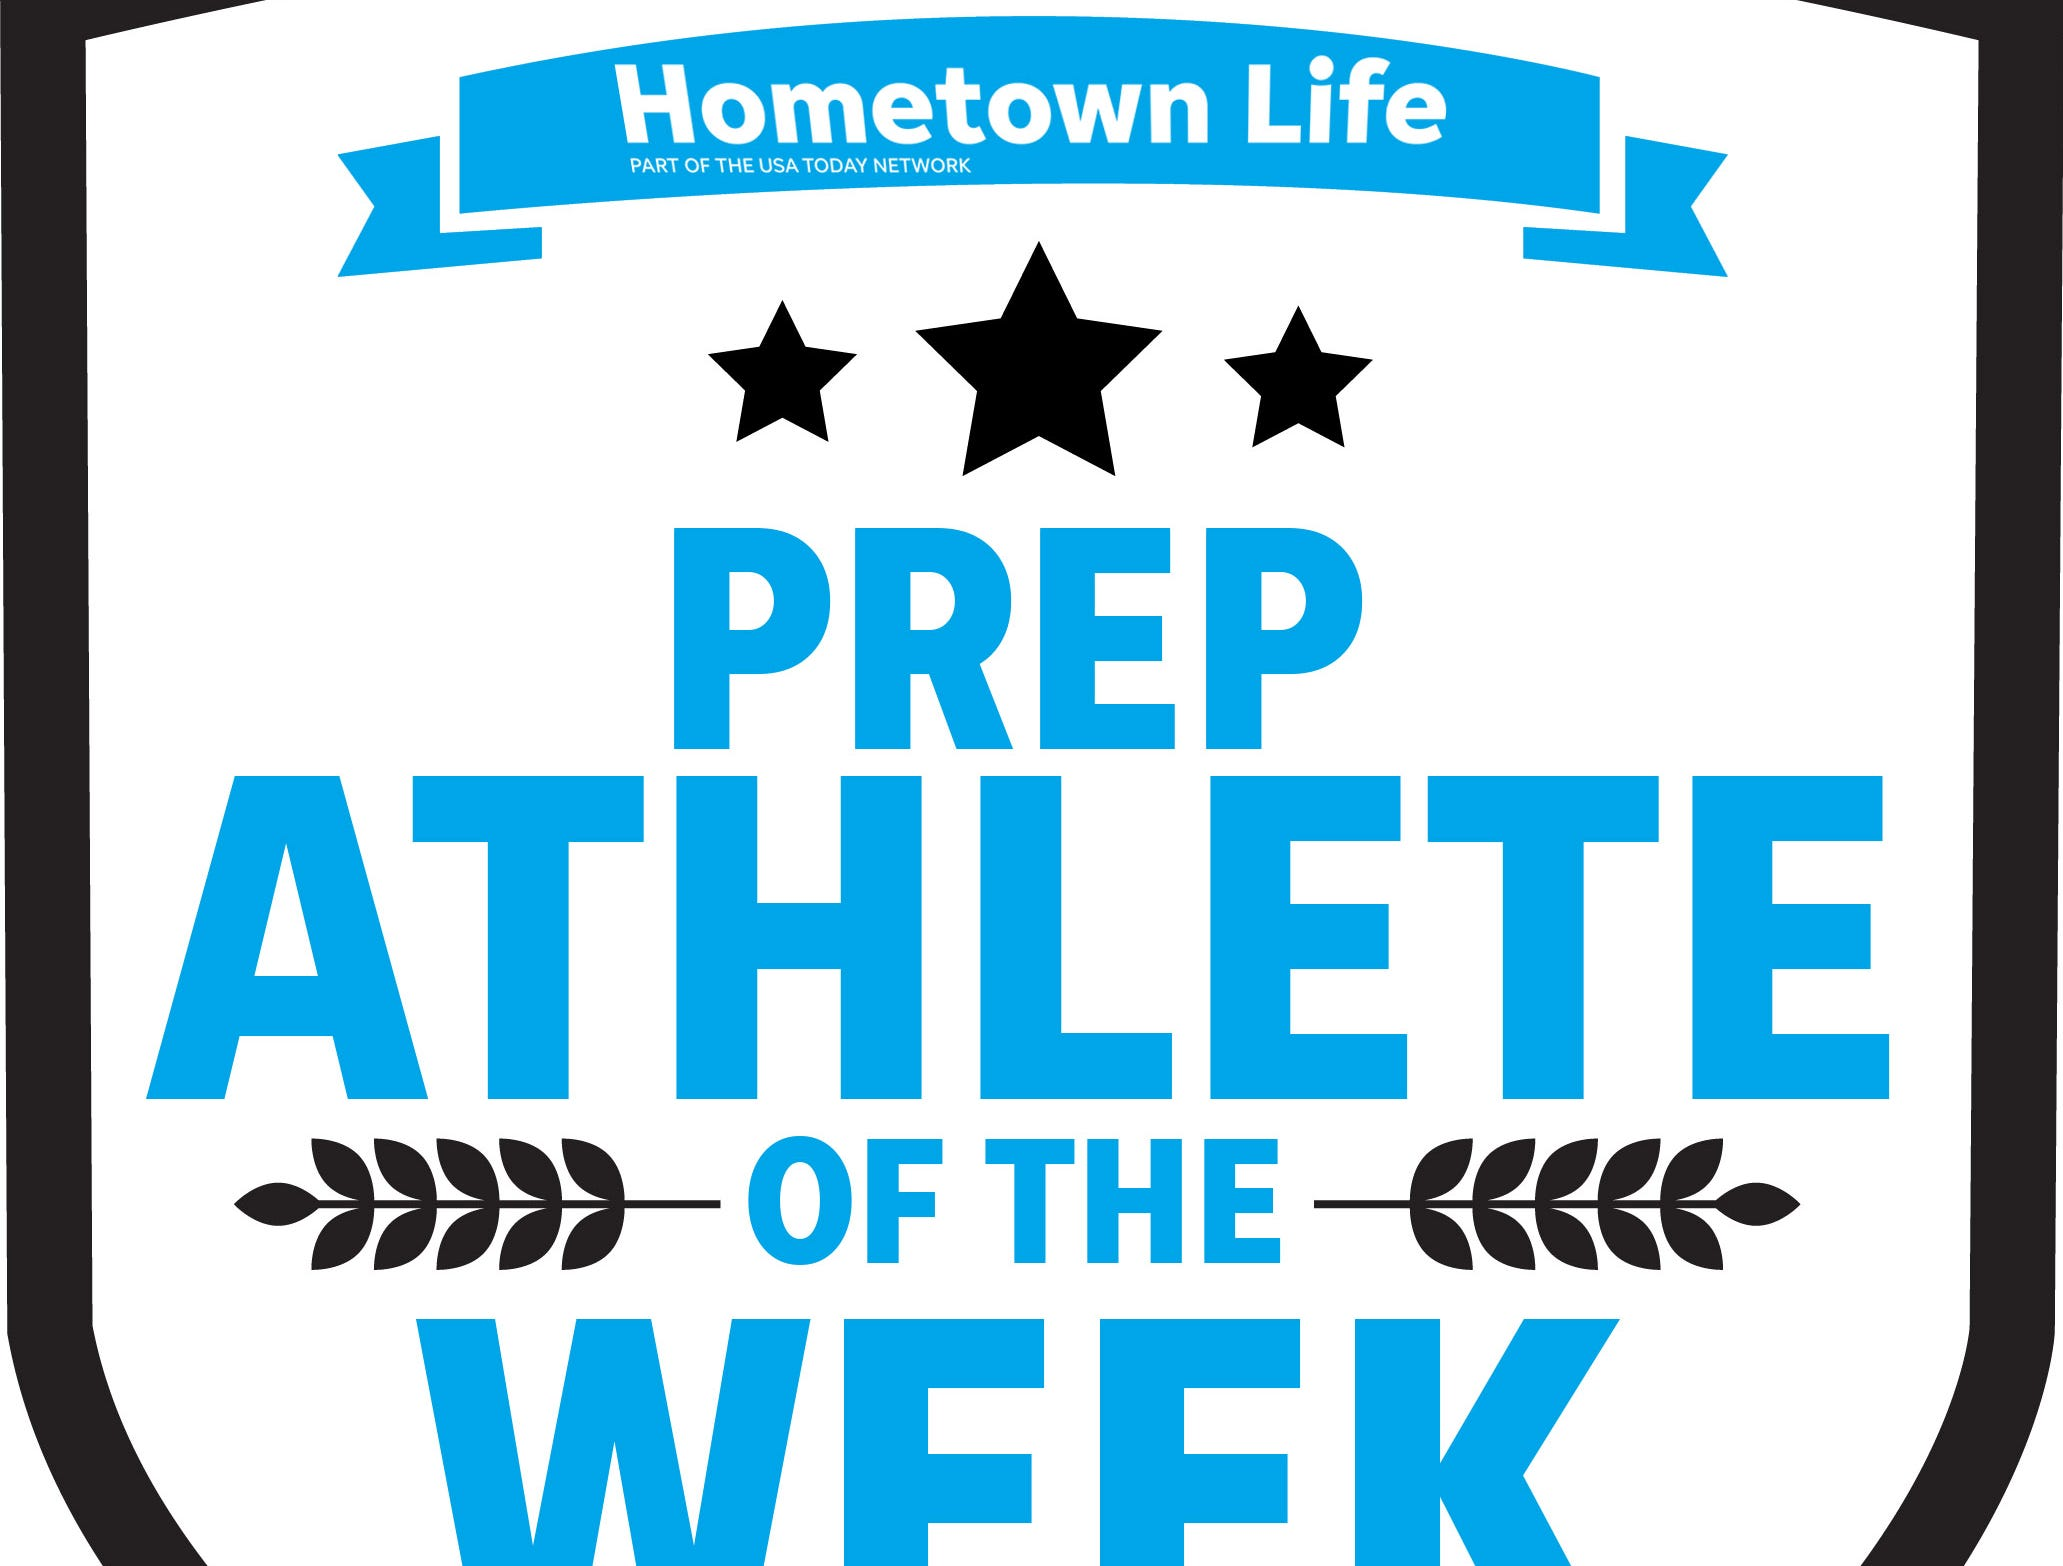 Cast your vote for Hometown Life Prep Athlete of the Week